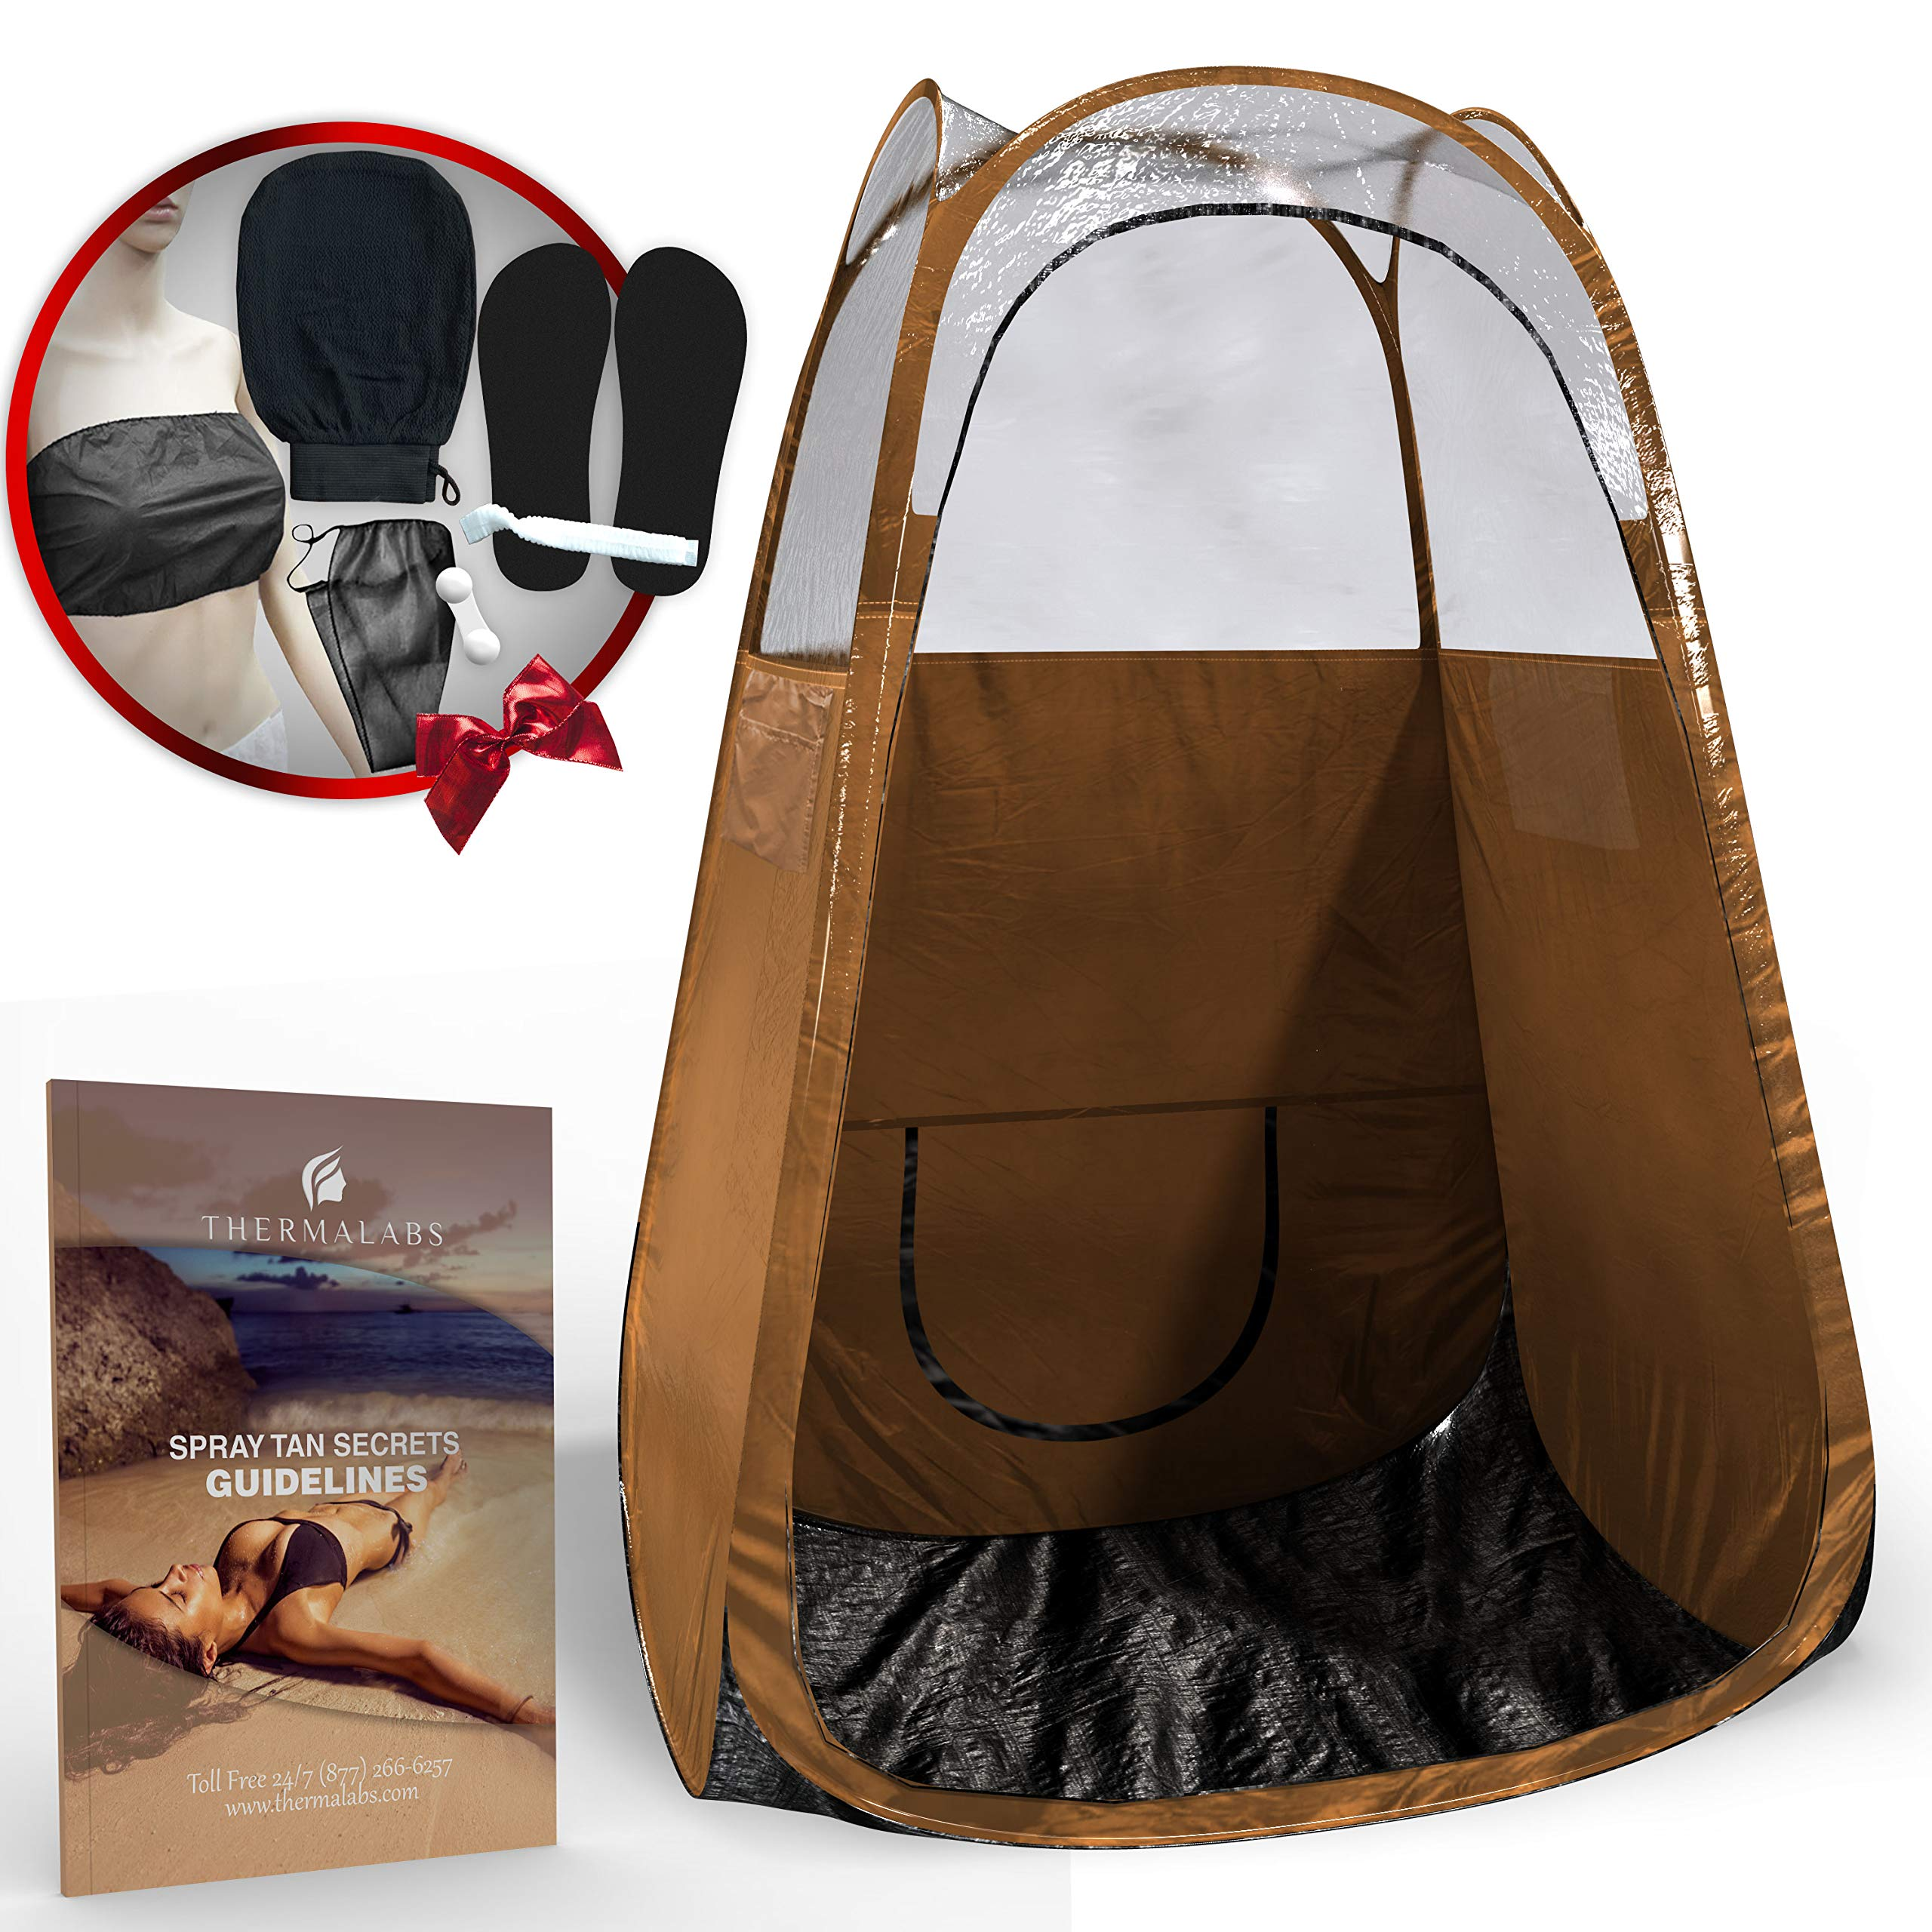 Spray Tan Tent (Bronze) The Best, Bigger Than Others, Folds Easily in 30 Seconds and Has NO Logo On Tent Itself! Professional Sunless Tanning Pop-Up Spraying Booth for Airbrush Art, Makeup & Painting